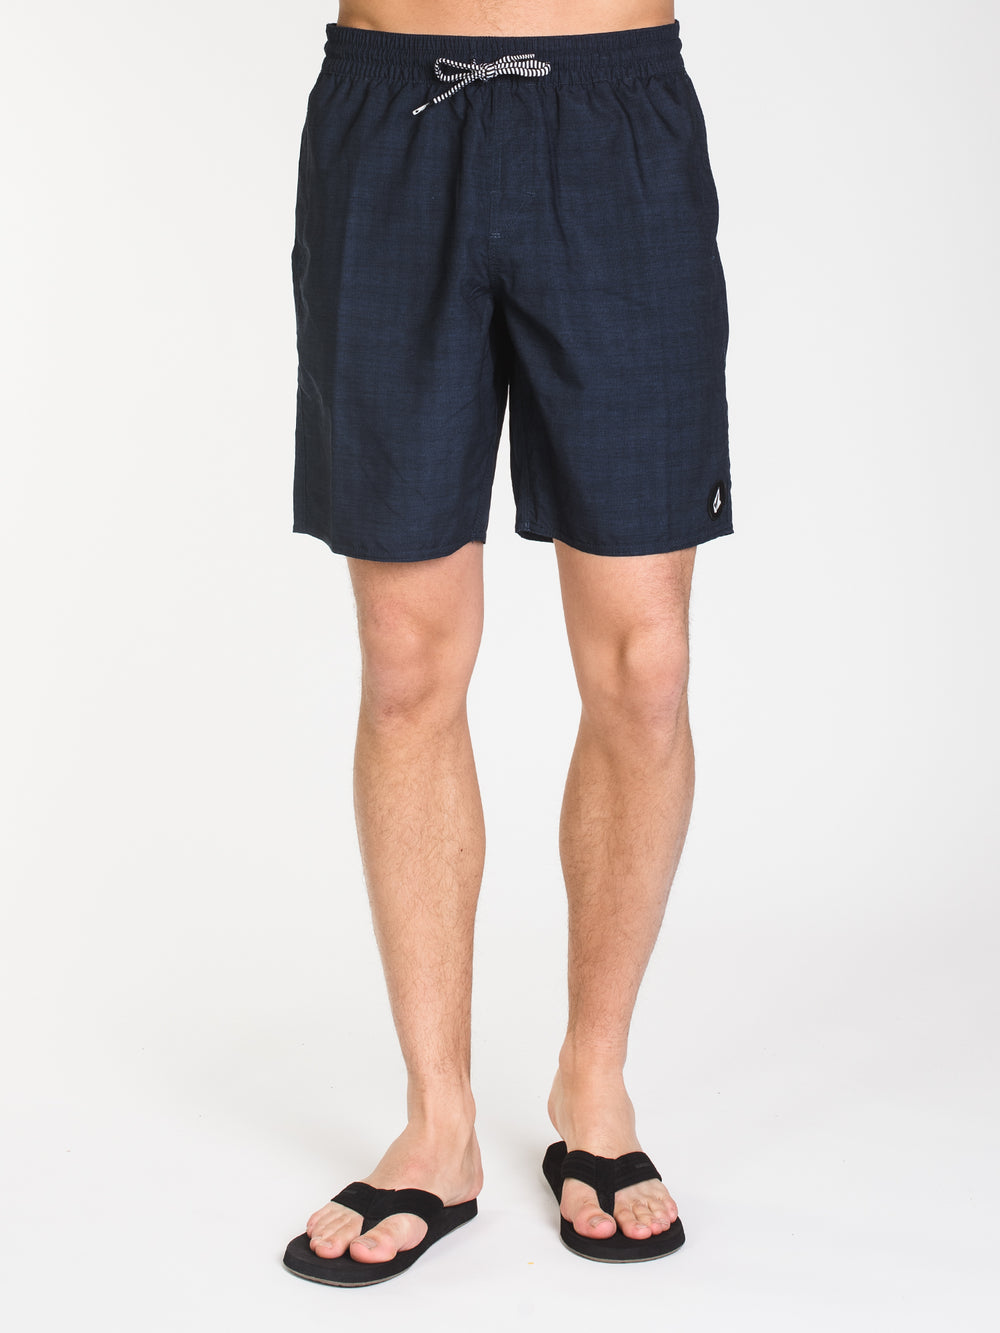 MENS HORIZON 19' VTRUNK - NAVY